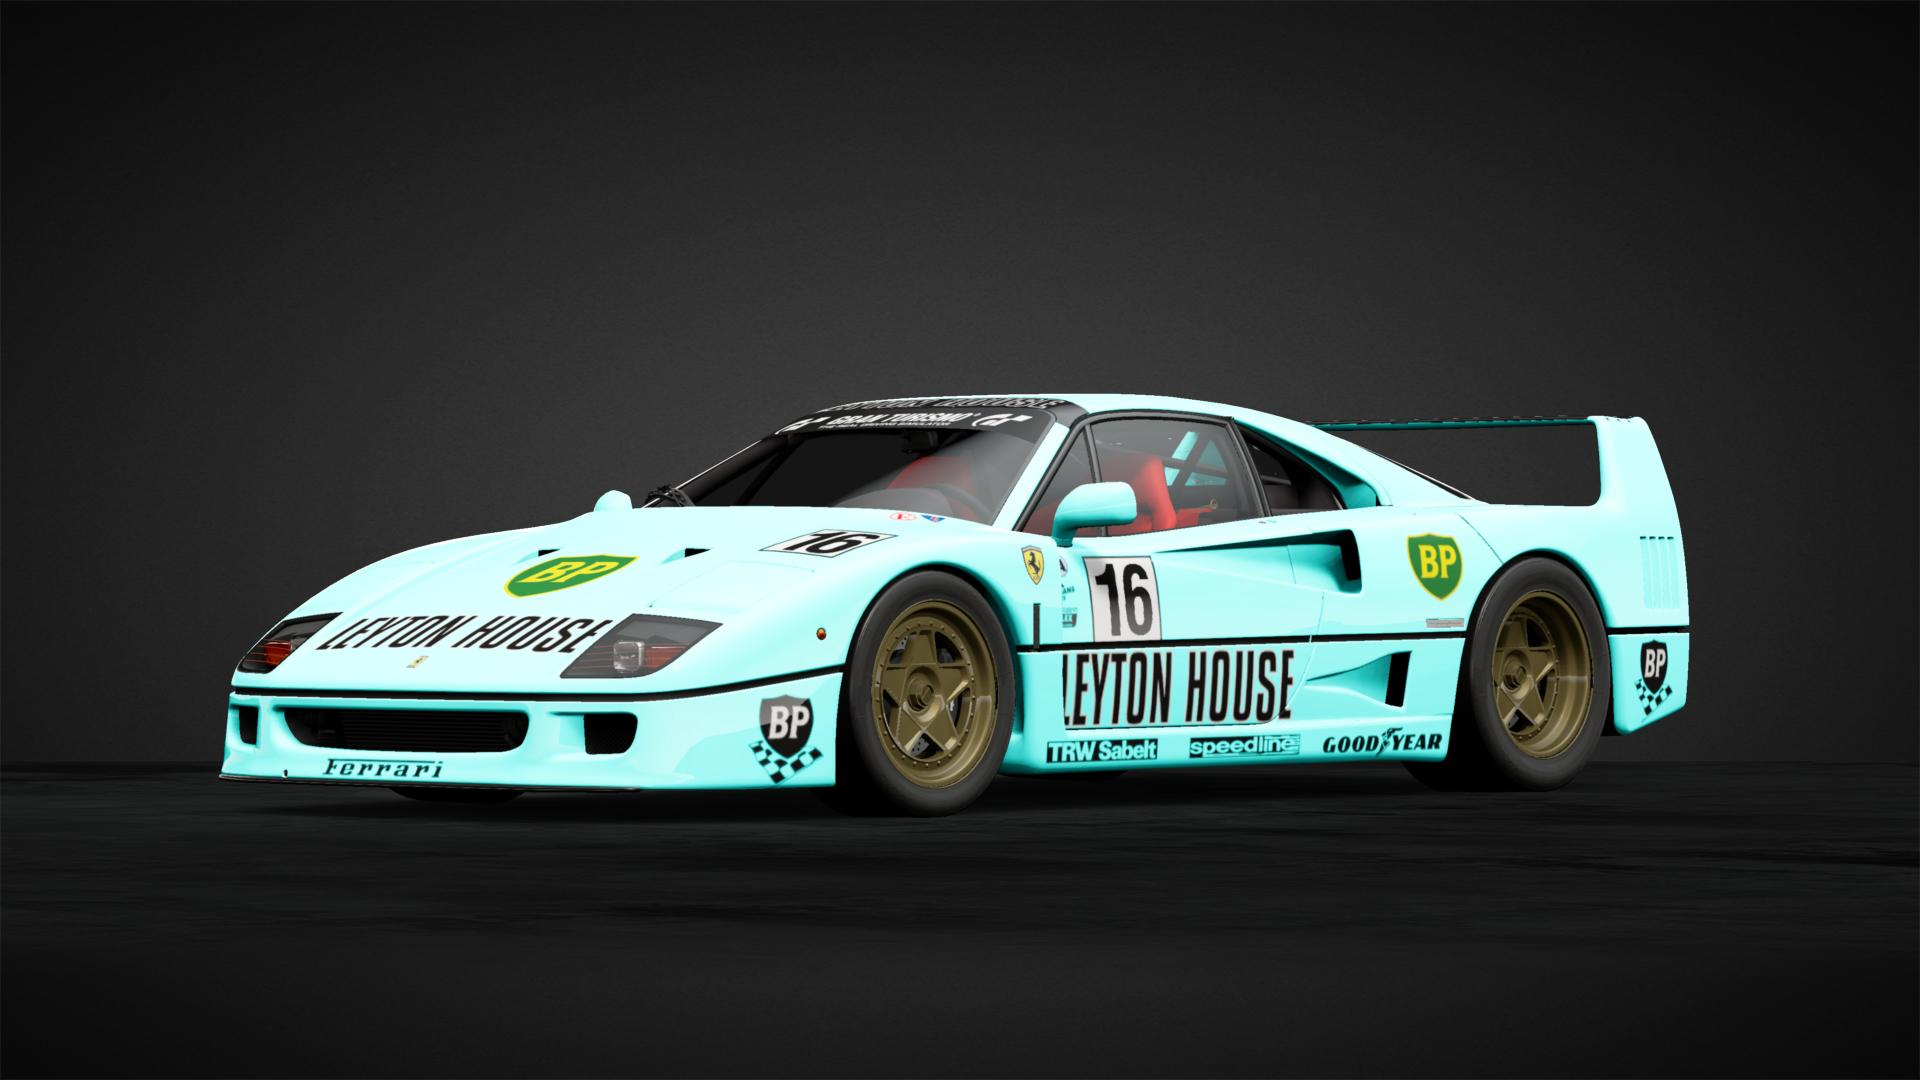 LEYTON HOUSE Ferrari F40 tribut , Car Livery by xCOLOMB1ANx